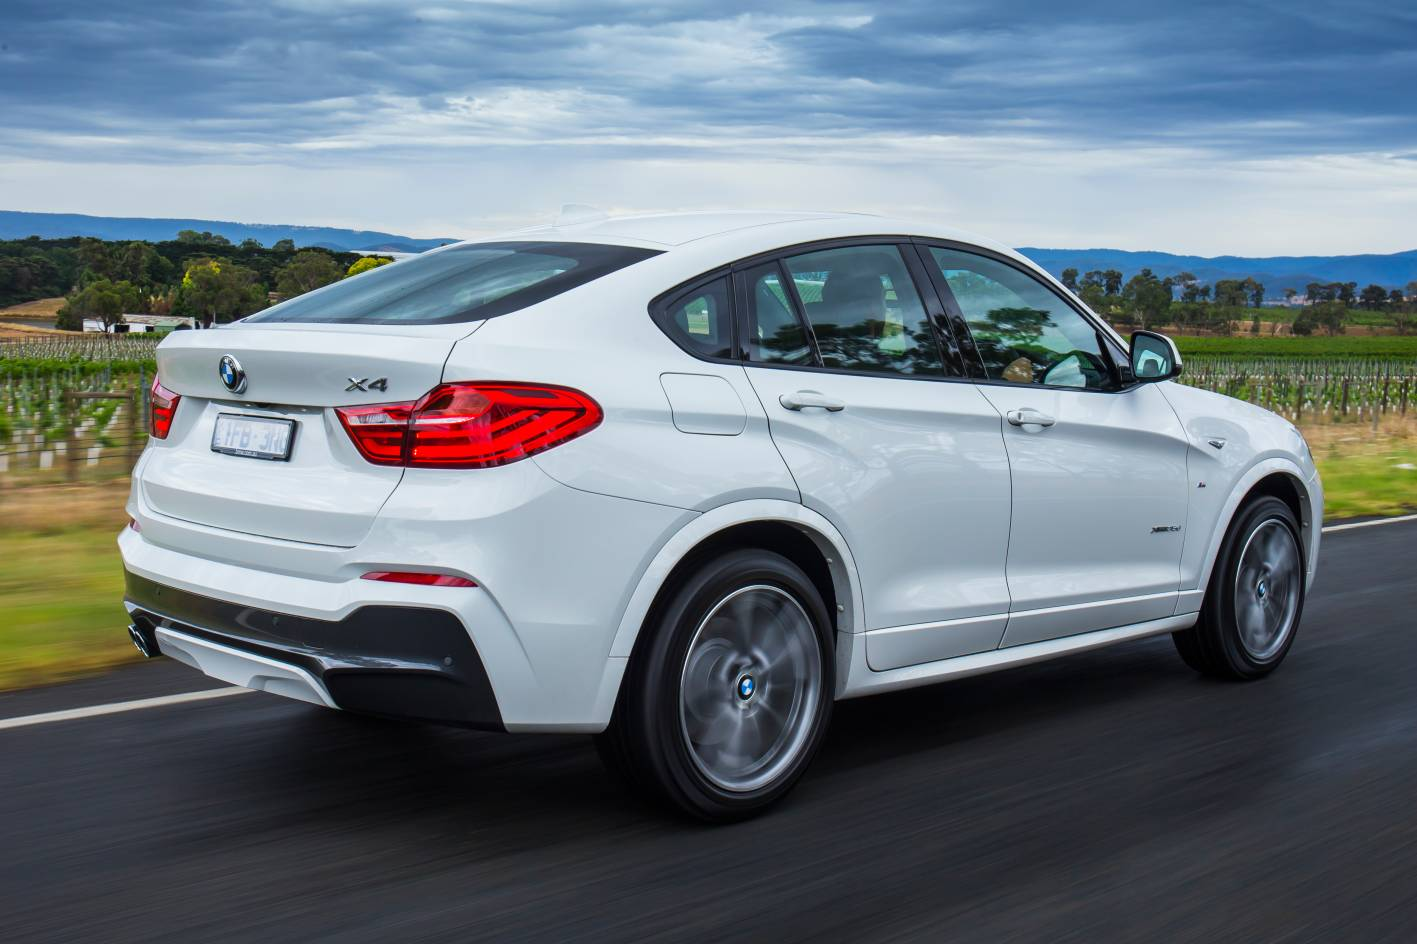 bmw x4 xdrive35d price and specification announced. Black Bedroom Furniture Sets. Home Design Ideas